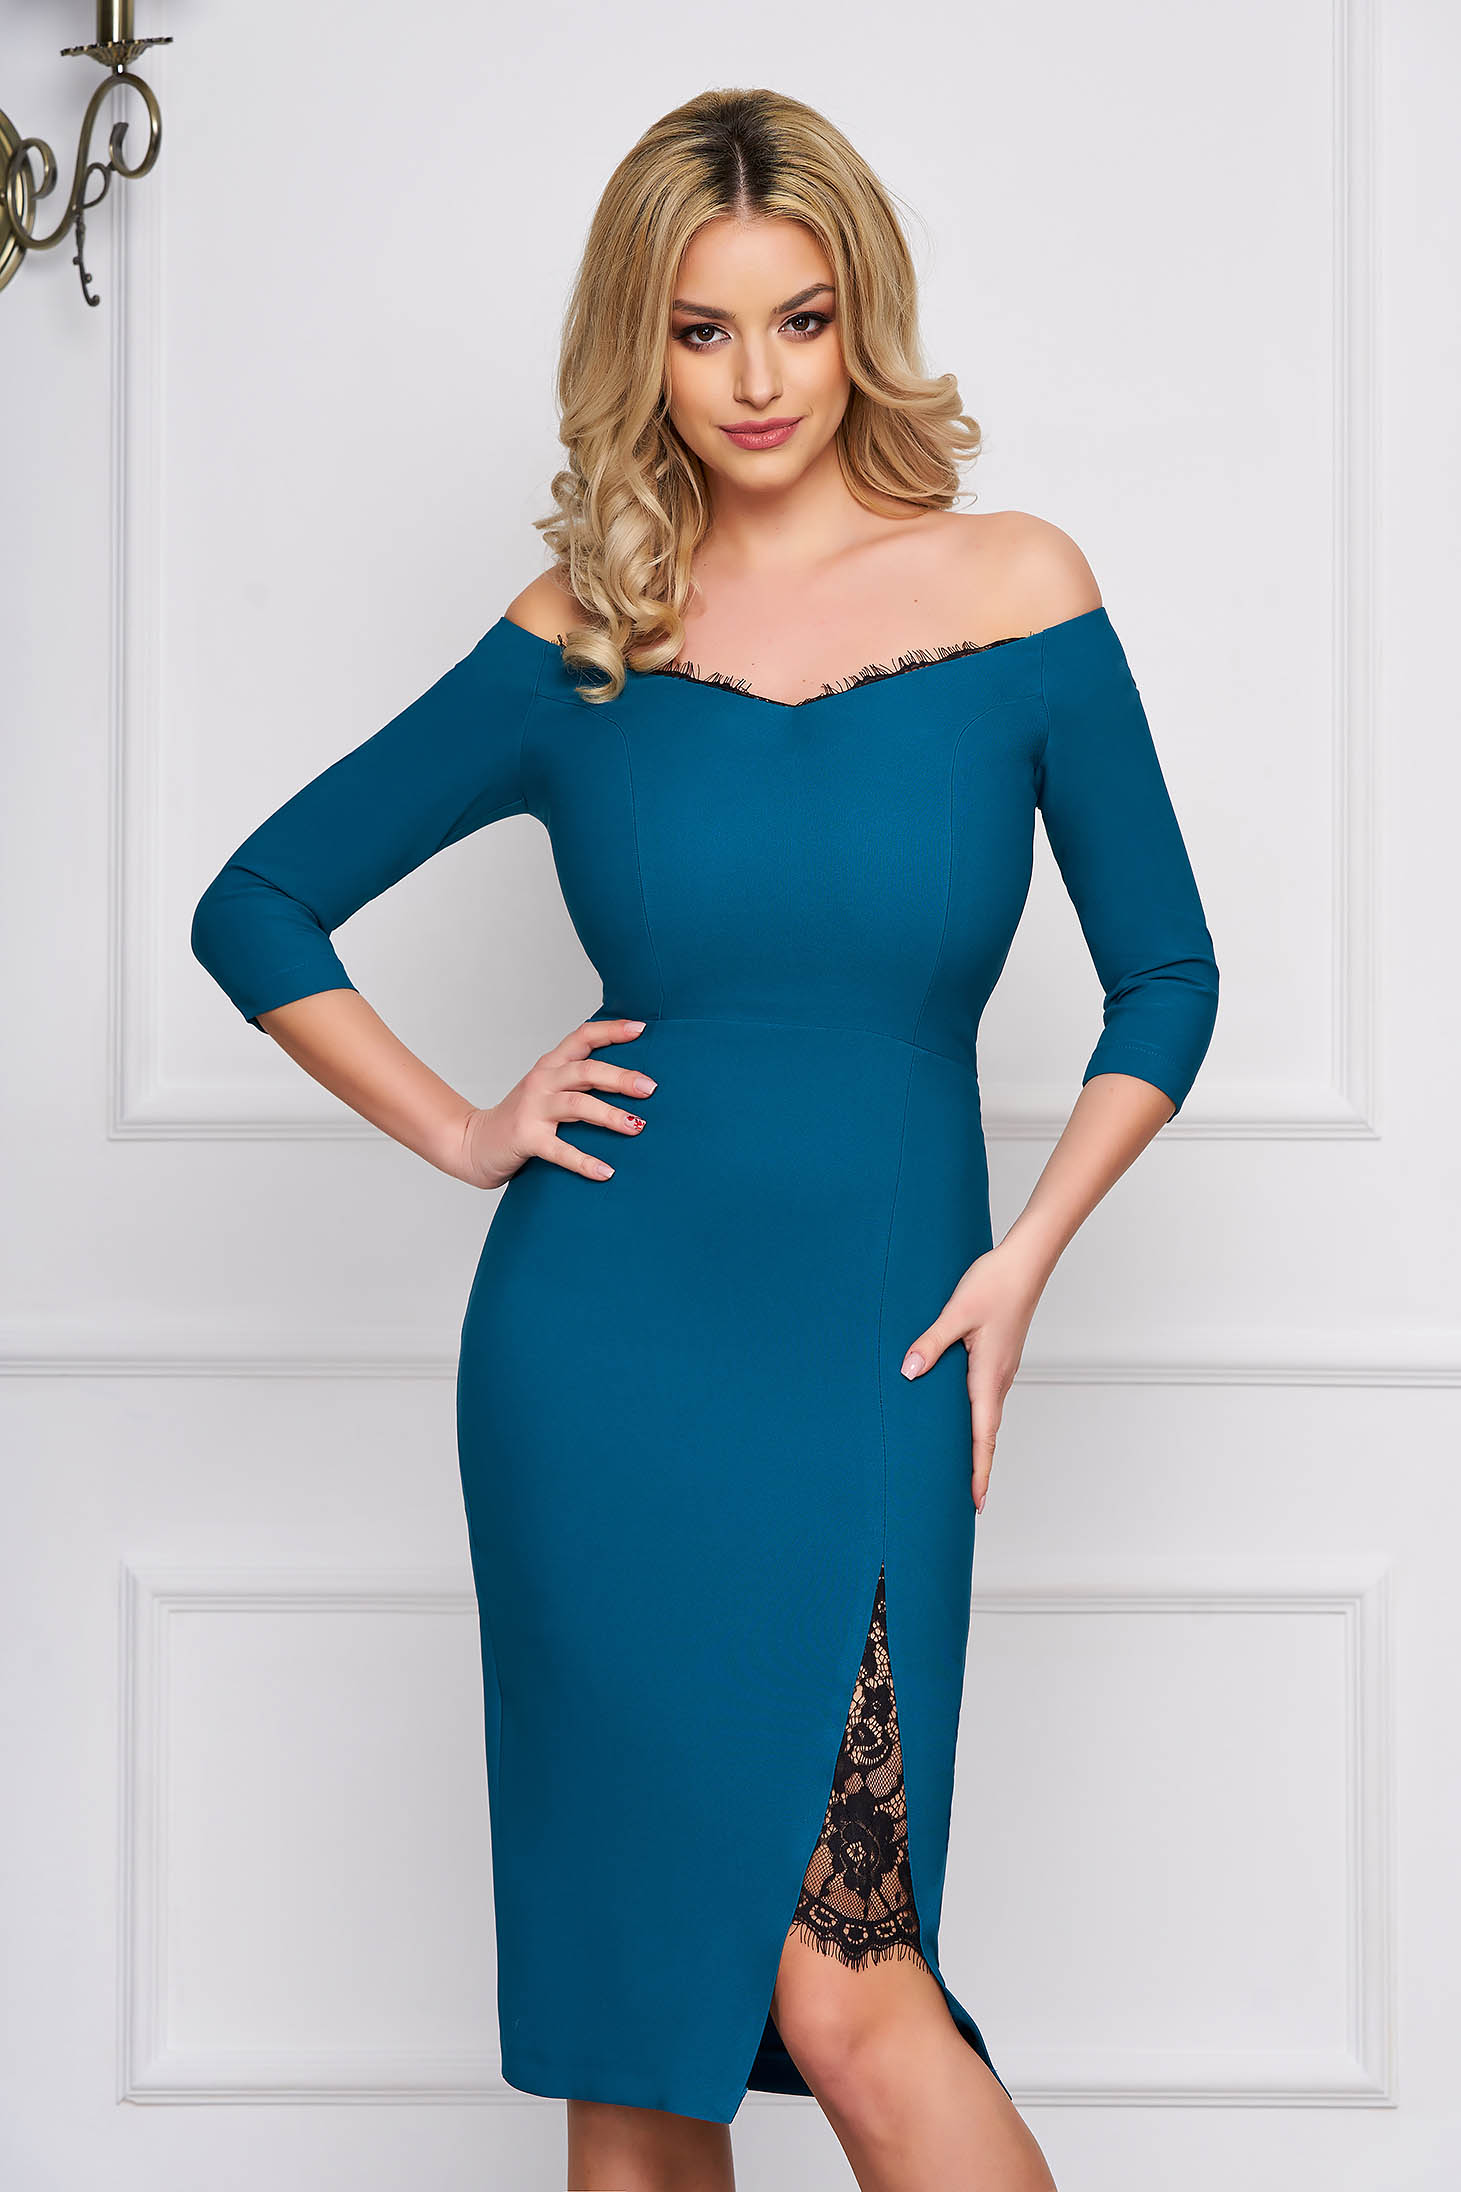 StarShinerS turquoise dress elegant midi pencil cloth thin fabric with 3/4 sleeves naked shoulders with lace details